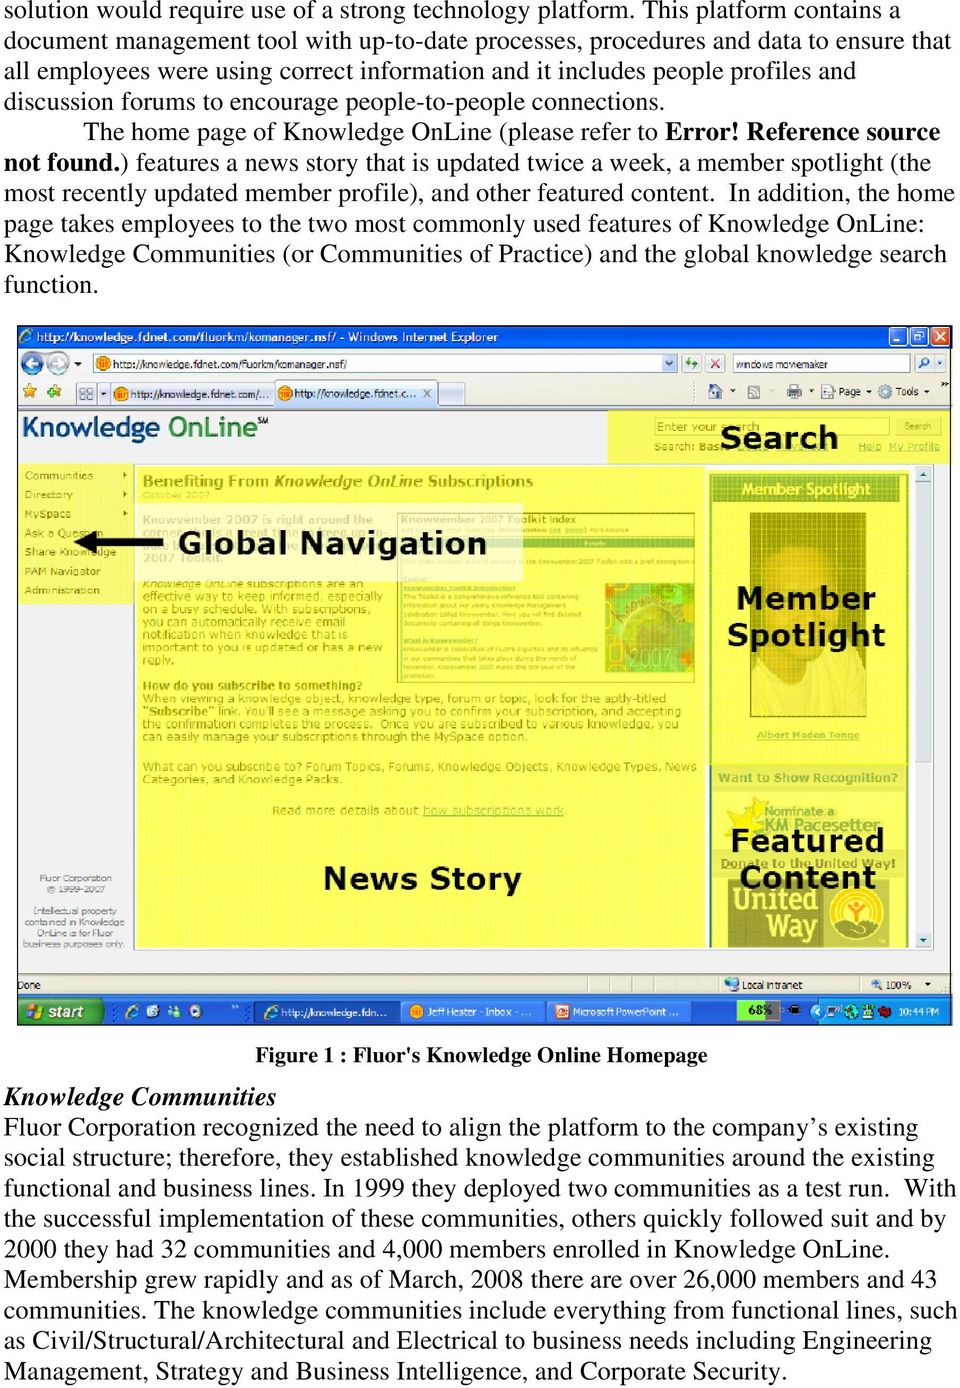 discussion forums to encourage people-to-people connections. The home page of Knowledge OnLine (please refer to Error! Reference source not found.